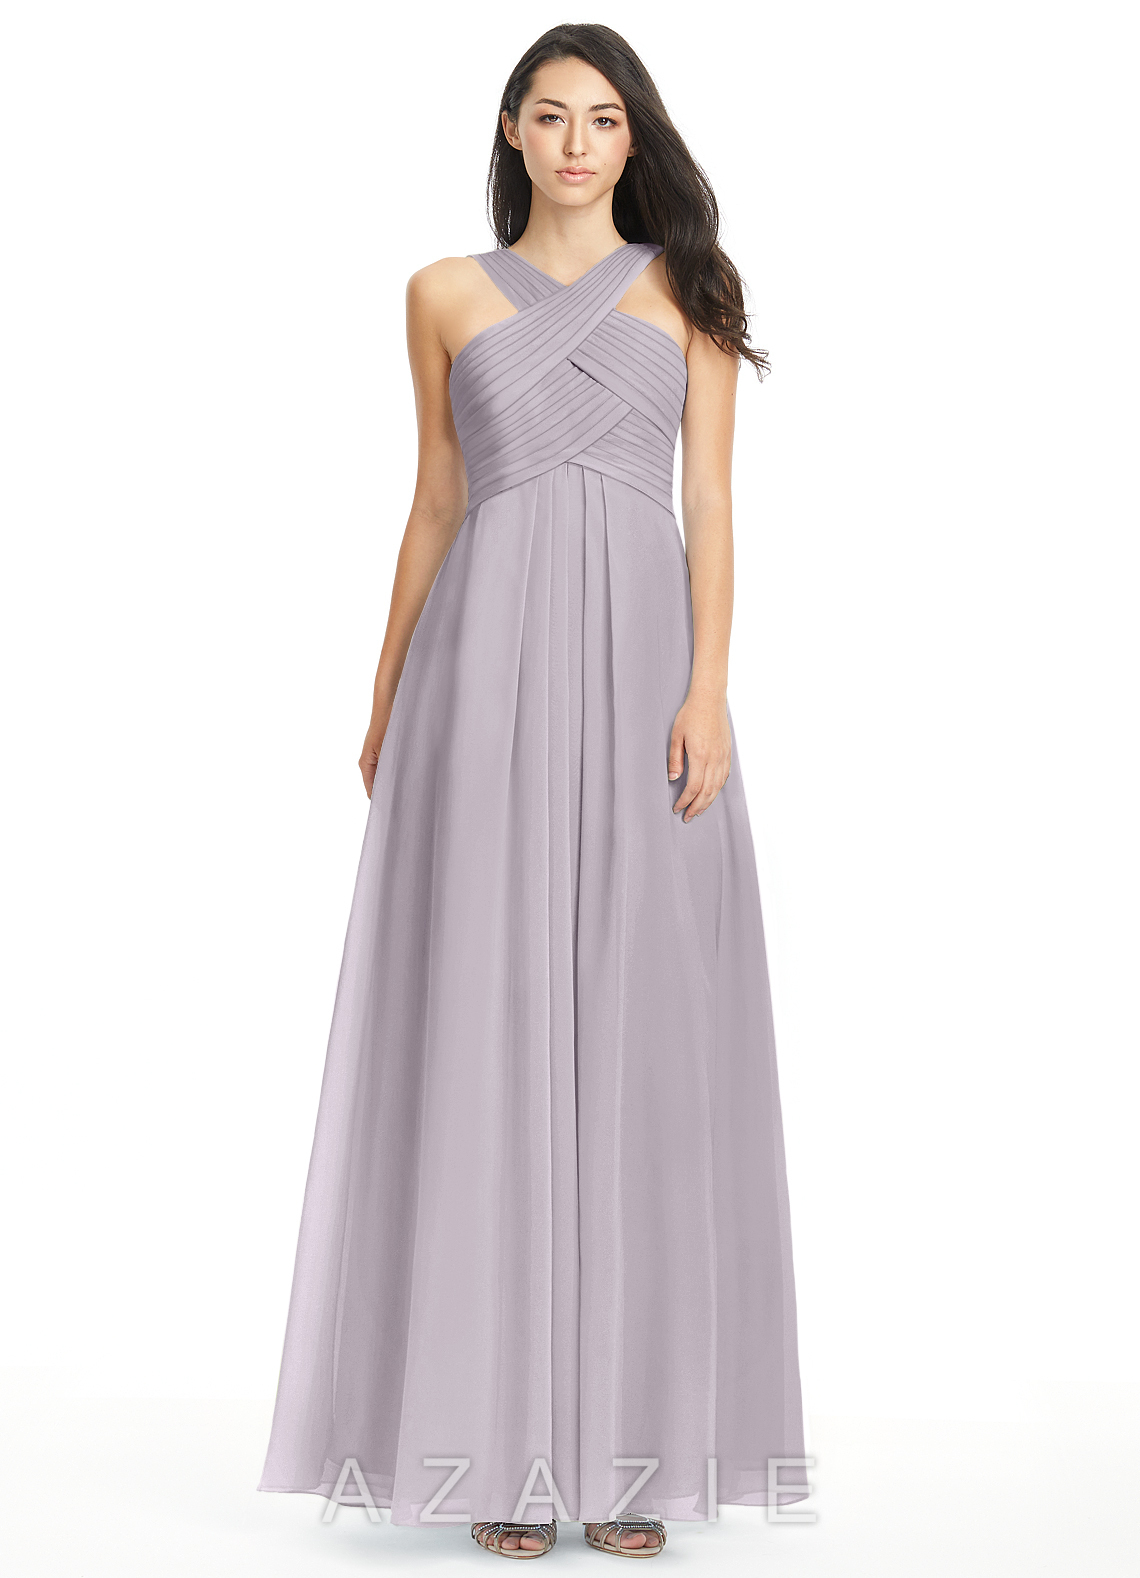 baded3eb8f5 Azazie Kaleigh Bridesmaid Dress - Dusk